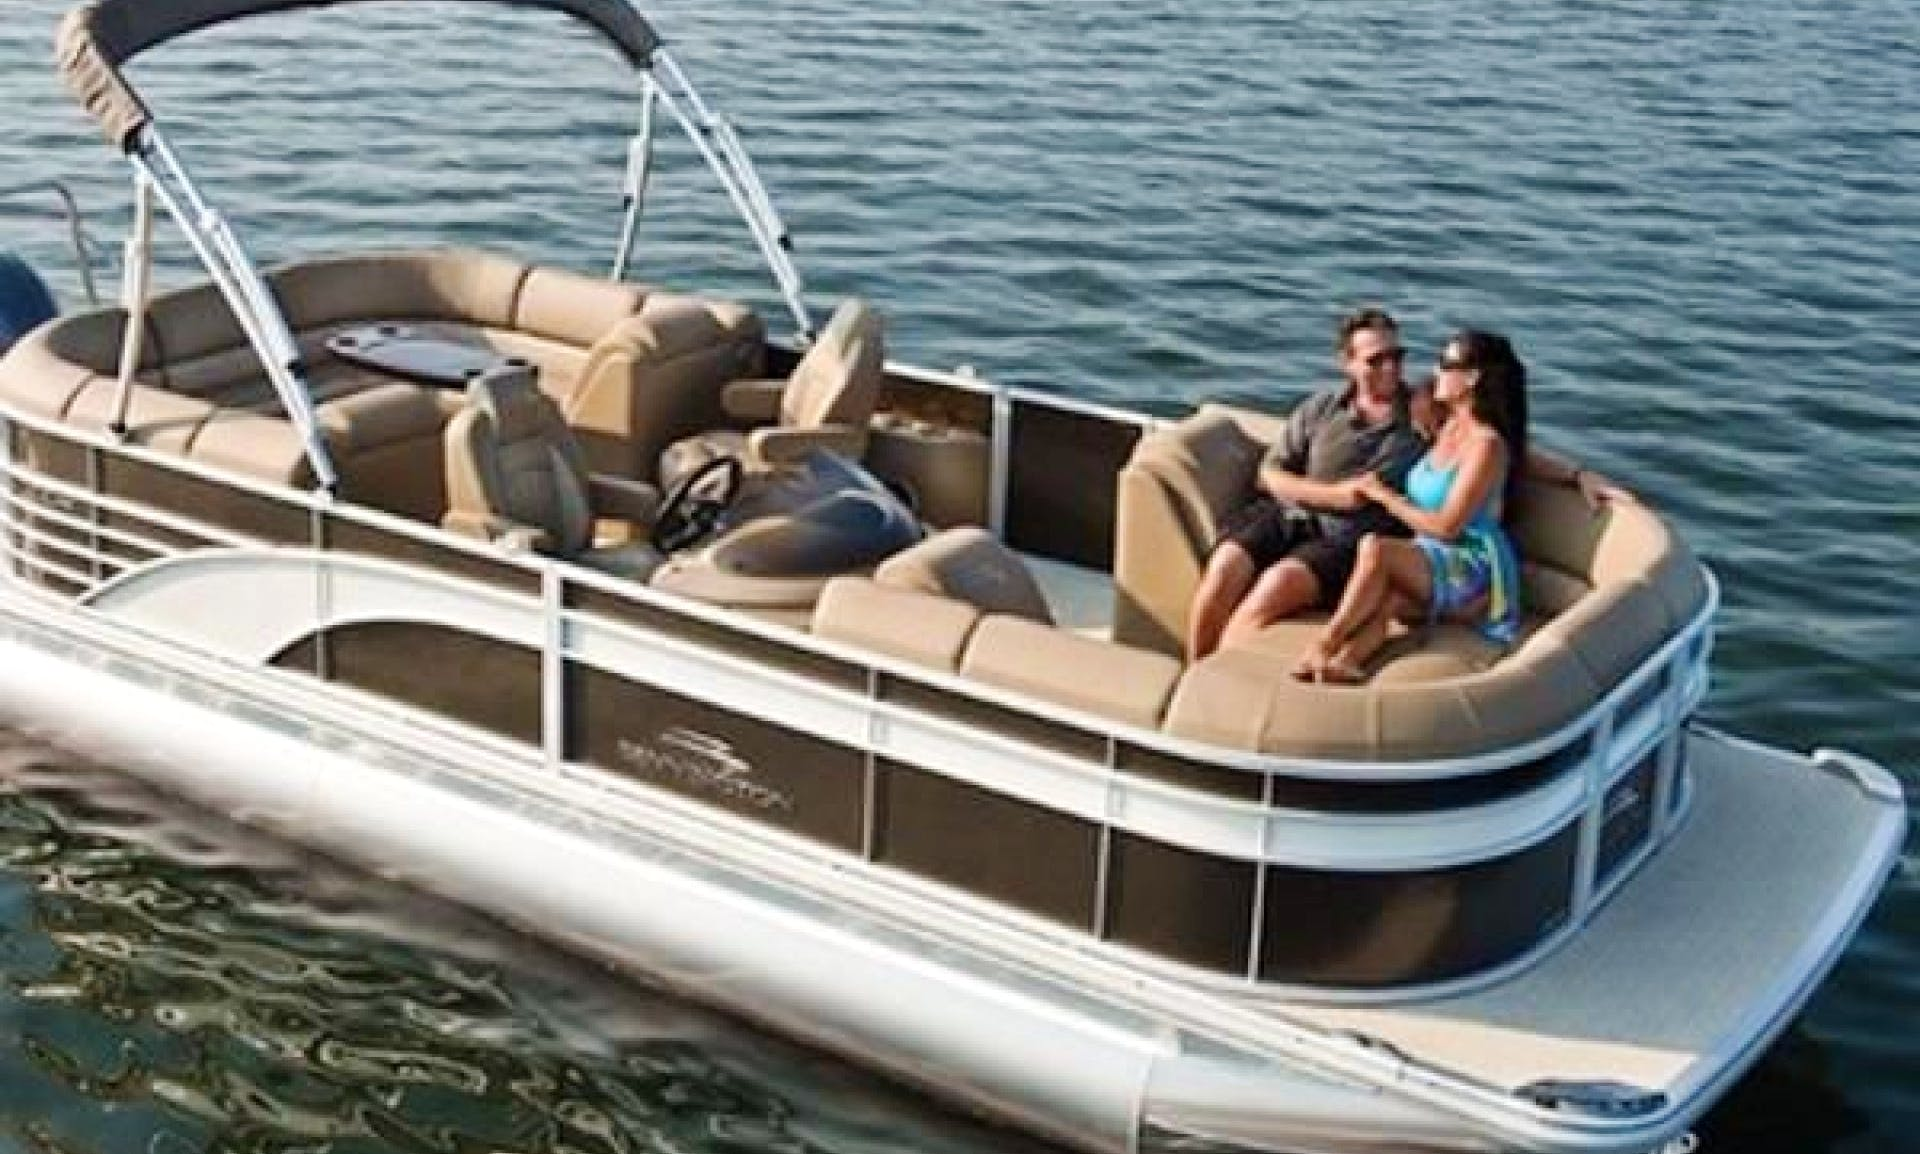 Explore Jensen Beach, FL on a 24' Pontoon Boat!